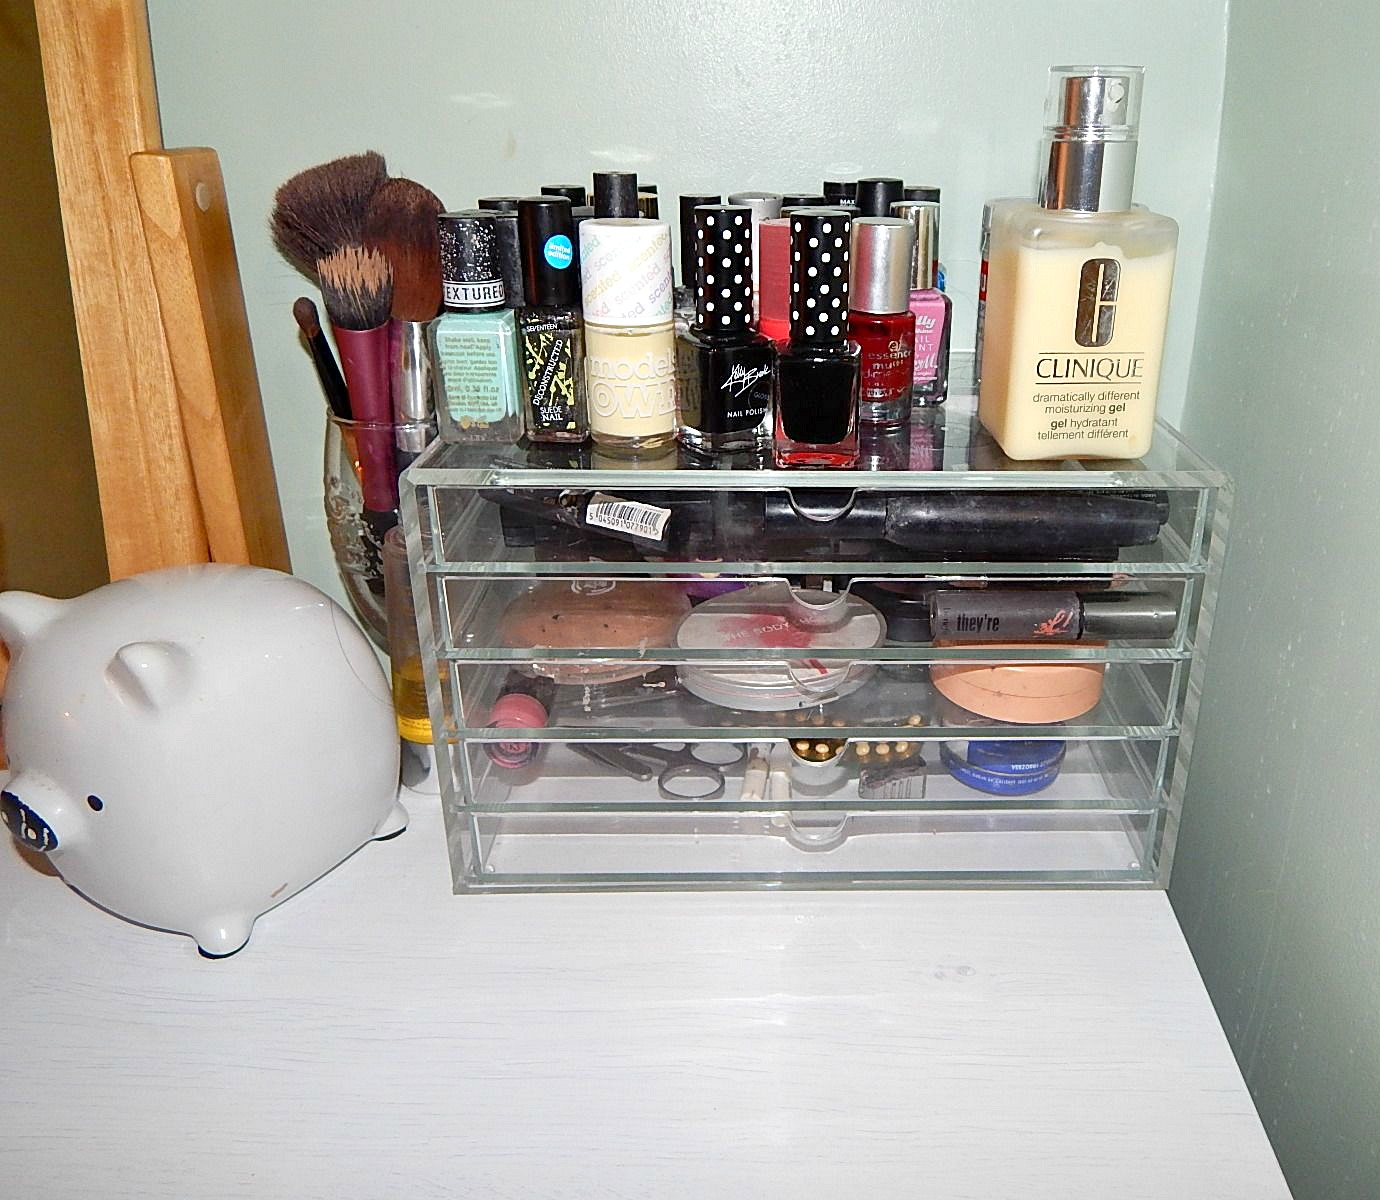 Makeup Storage 2 & Makeup Storage: When A Grubby Makeup Bag Isnu0027t Good Enough | Vanity ...